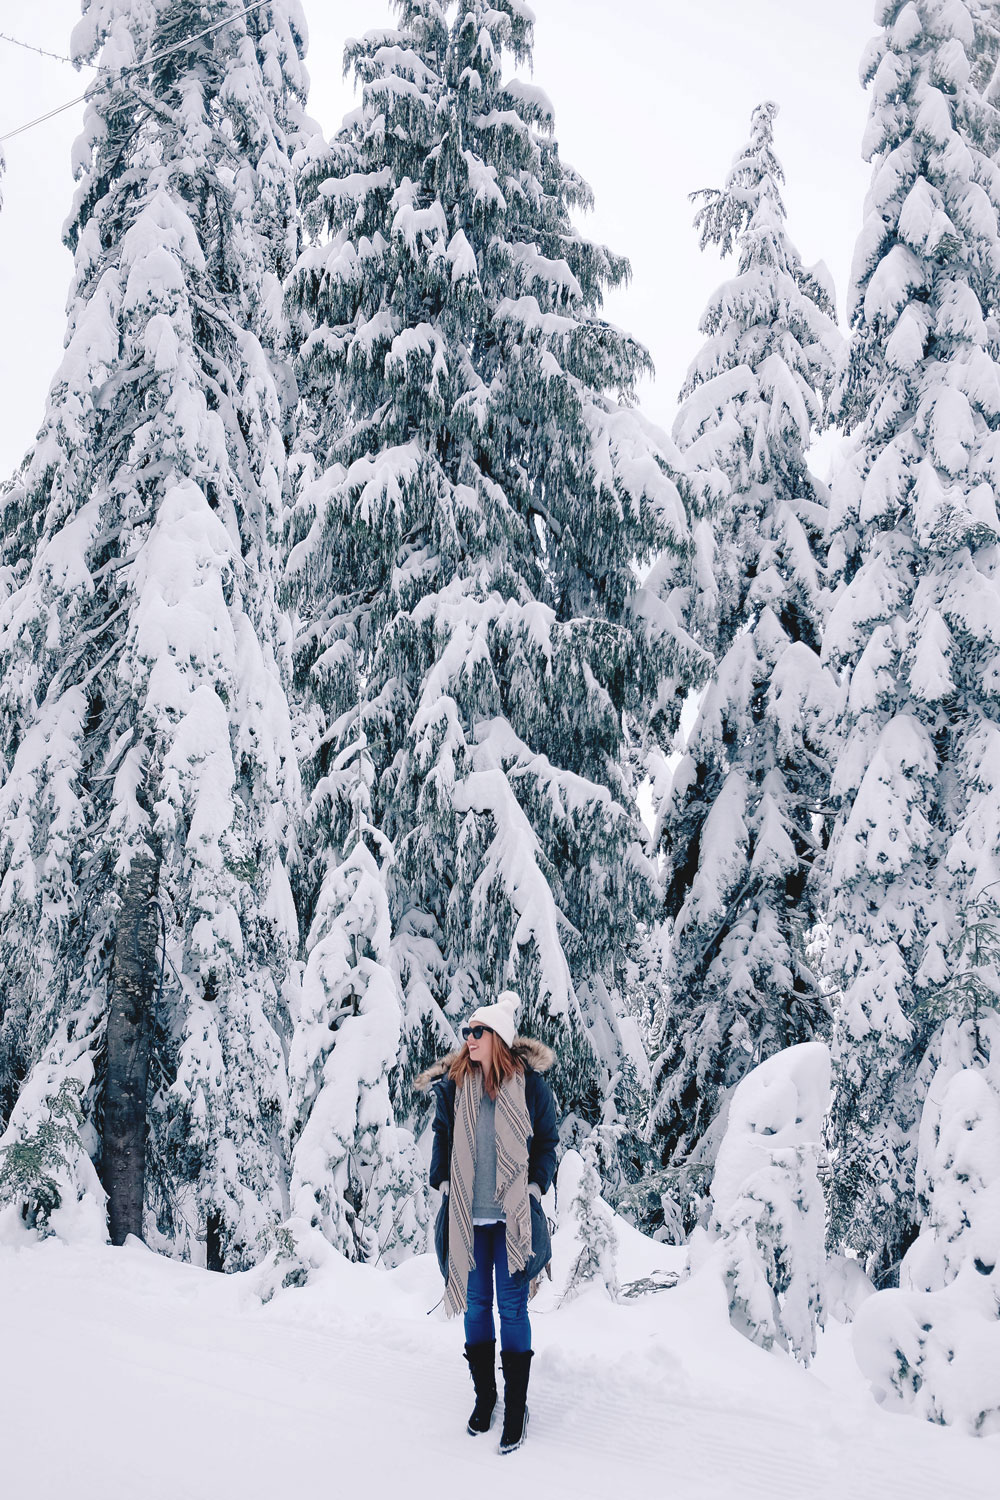 Best winter outfit ideas in the snow in Aritzia Community parka, James jeans skinny jeans, White and Warren cashmere sweater, Aritzia blanket scarf, Hershel beanie, Sorel snow boots styled by To Vogue or Bust at Grouse Mountain, Vancouver